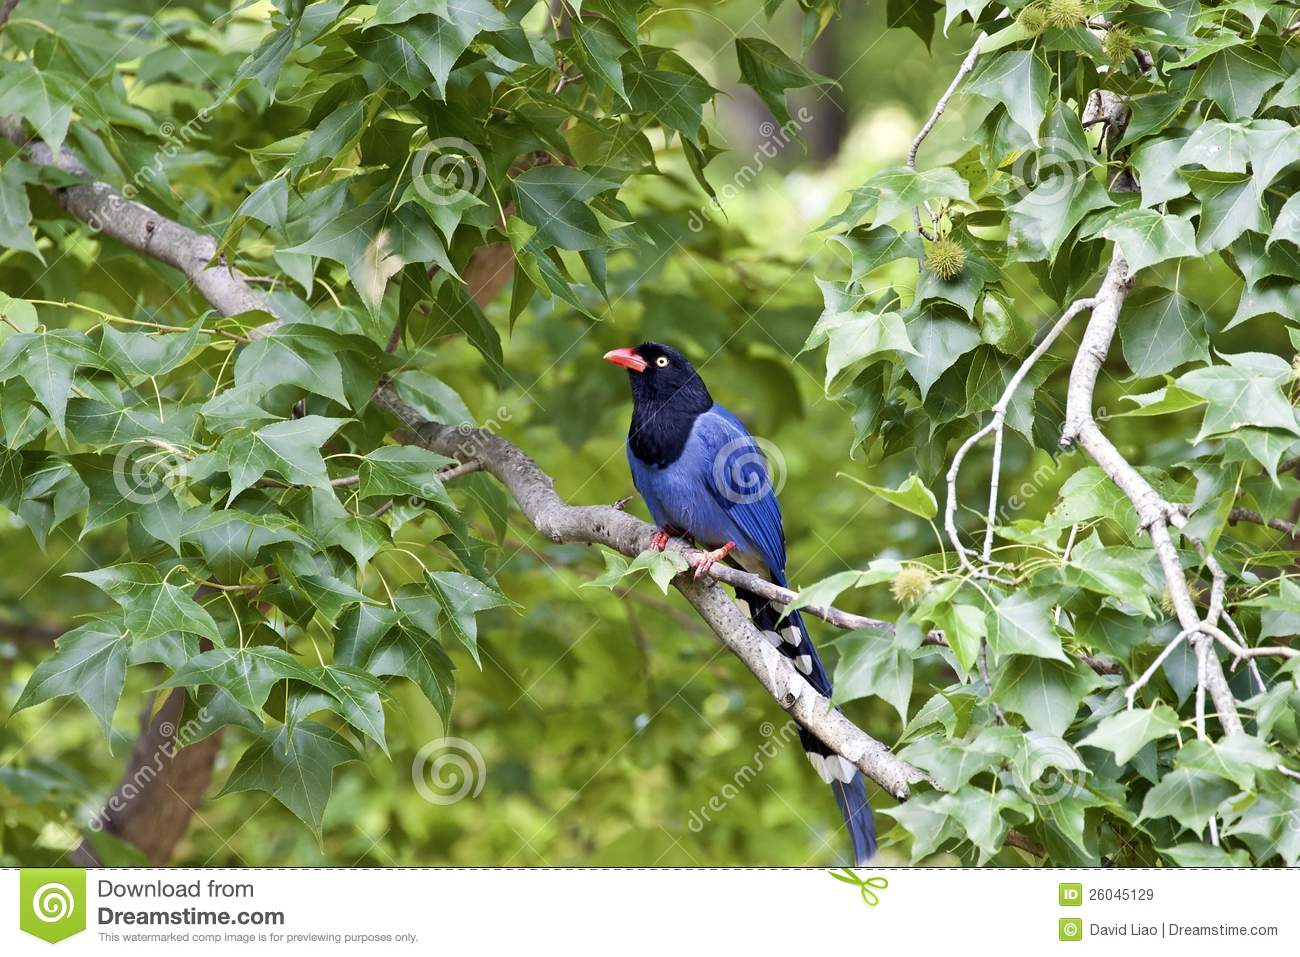 Taiwan Blue Magpie clipart #8, Download drawings